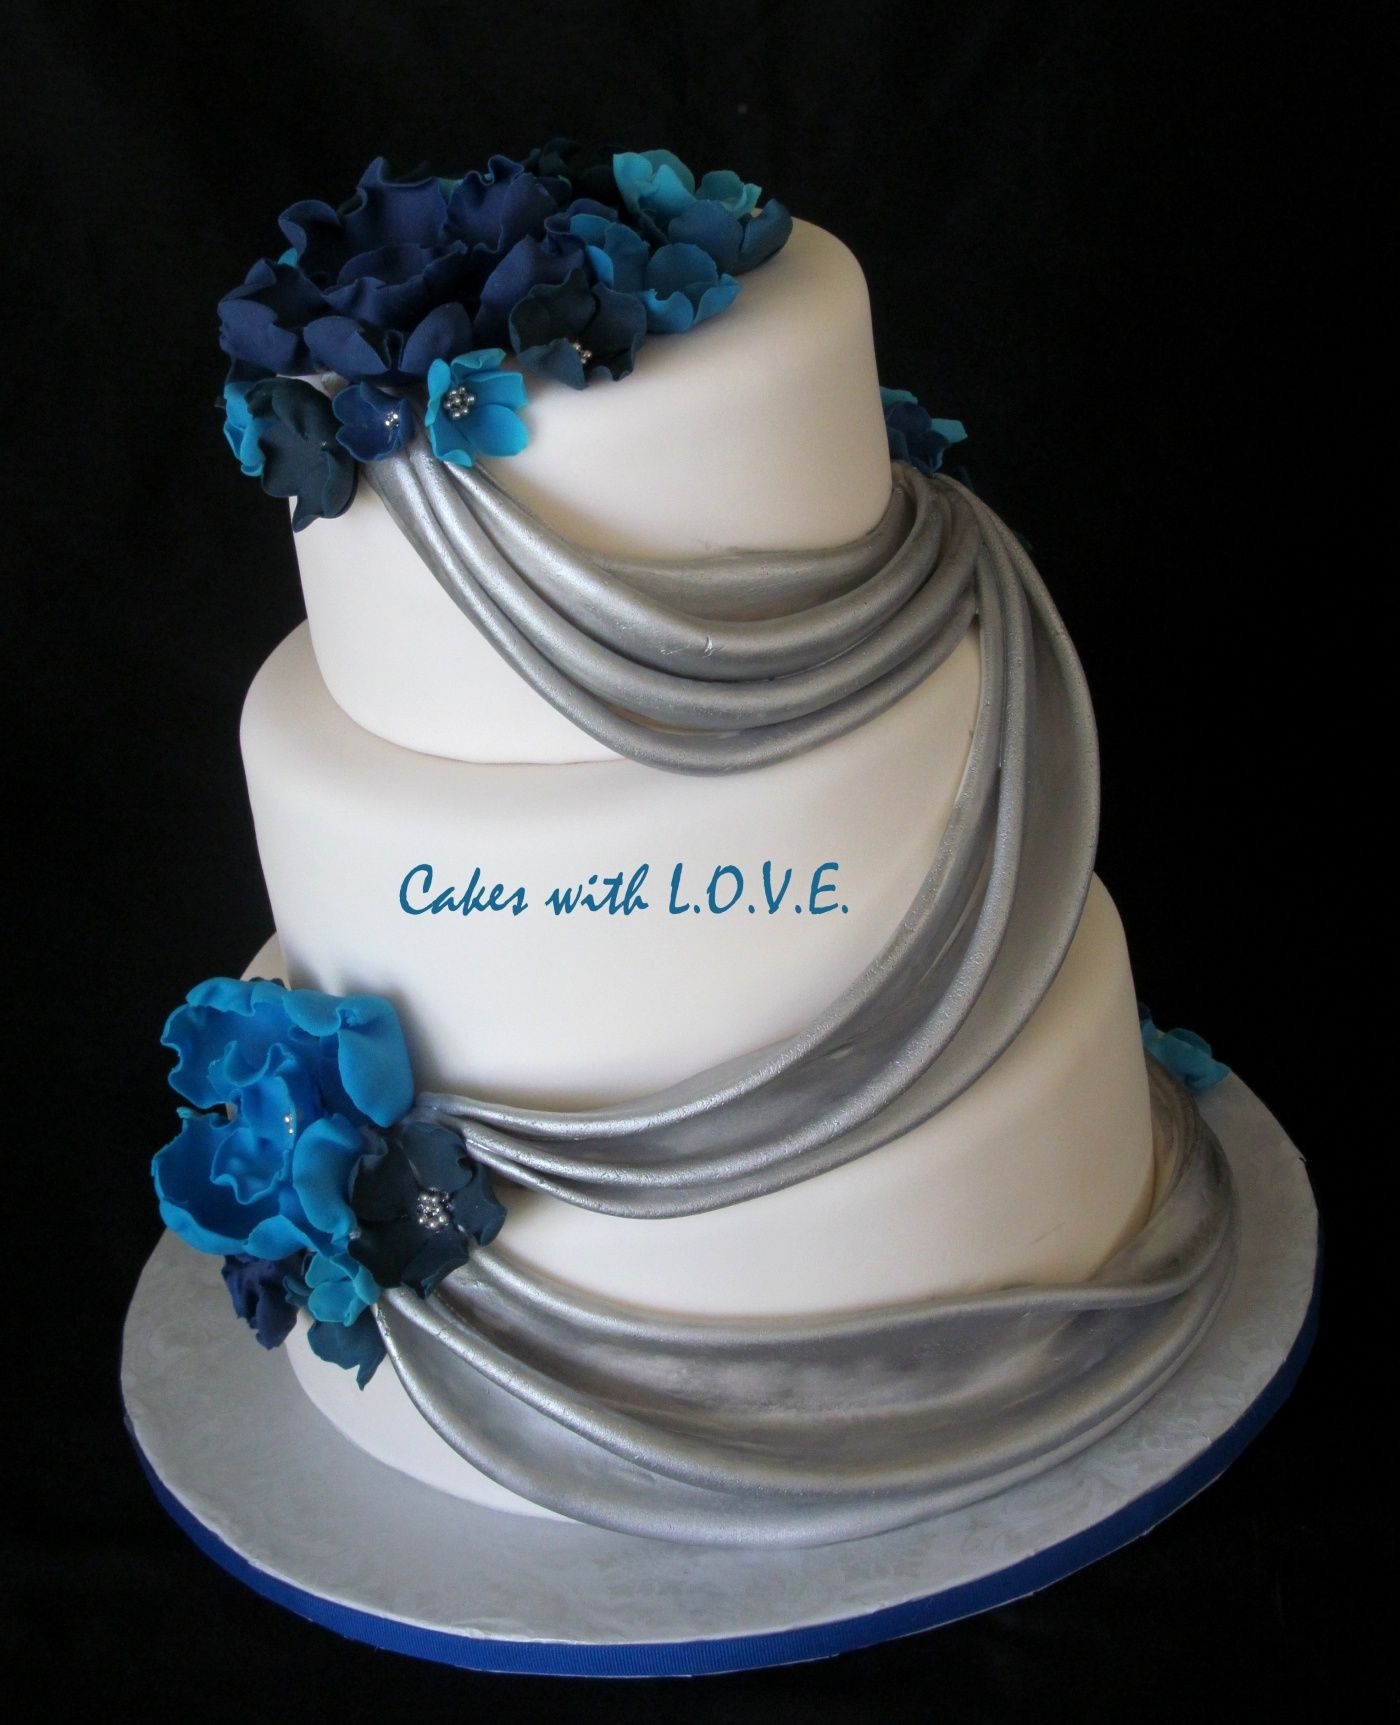 14 of 15 Light Blue And Silver Wedding Cakes